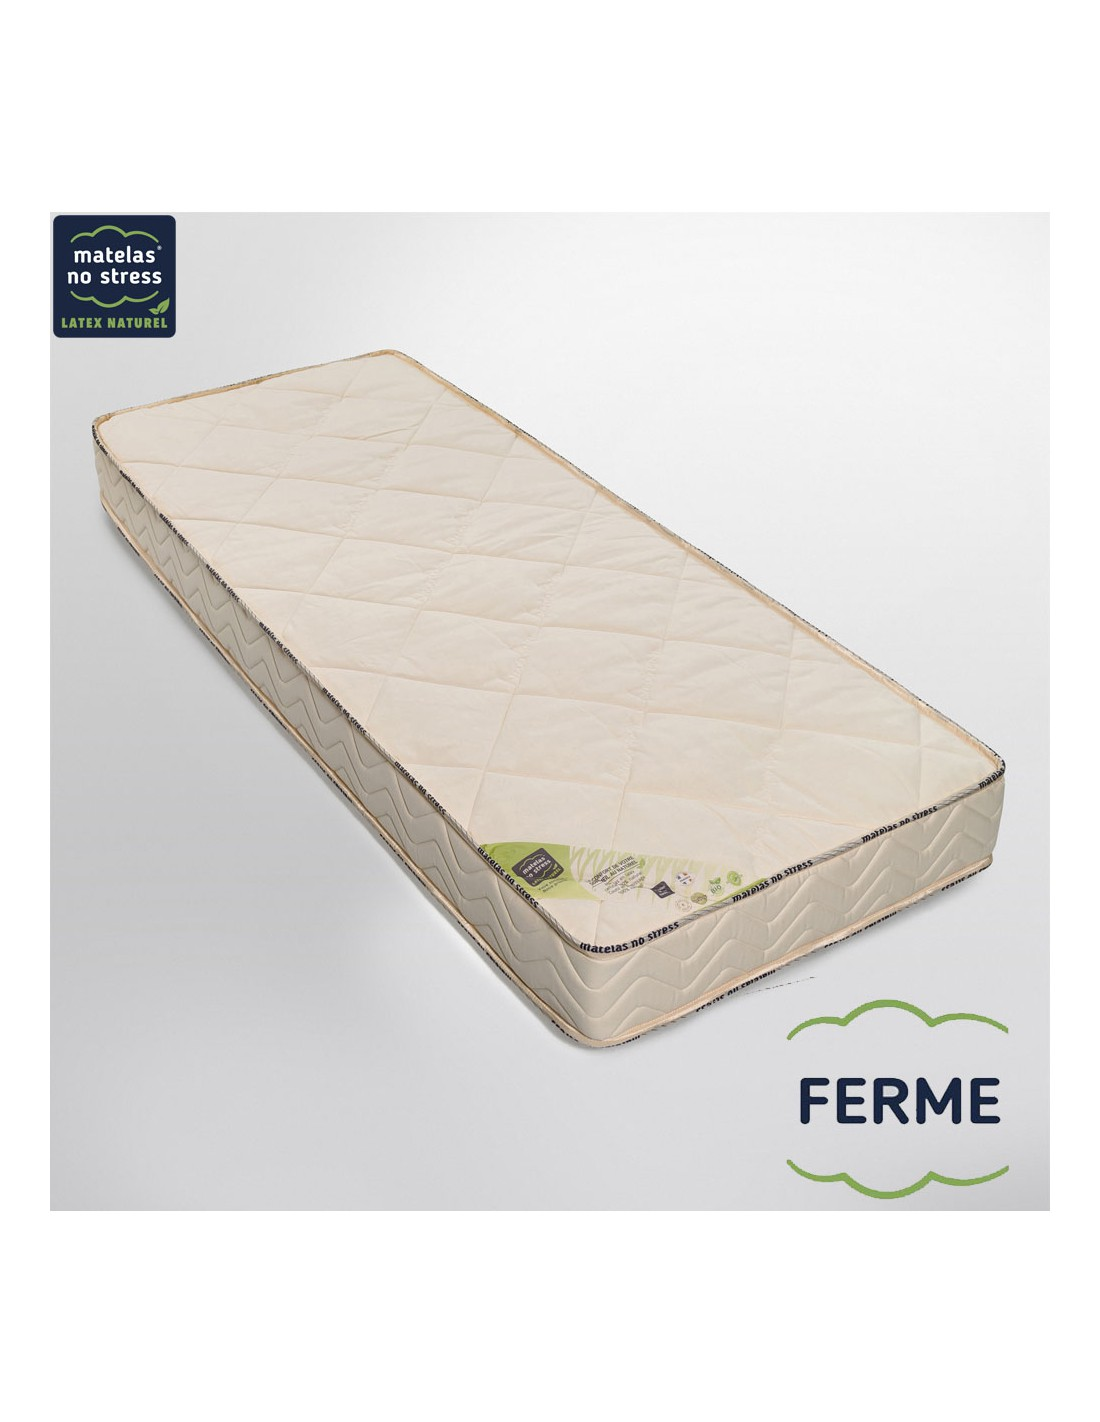 matelas bio latex naturel 80x200 l gance ferme 18 cm. Black Bedroom Furniture Sets. Home Design Ideas